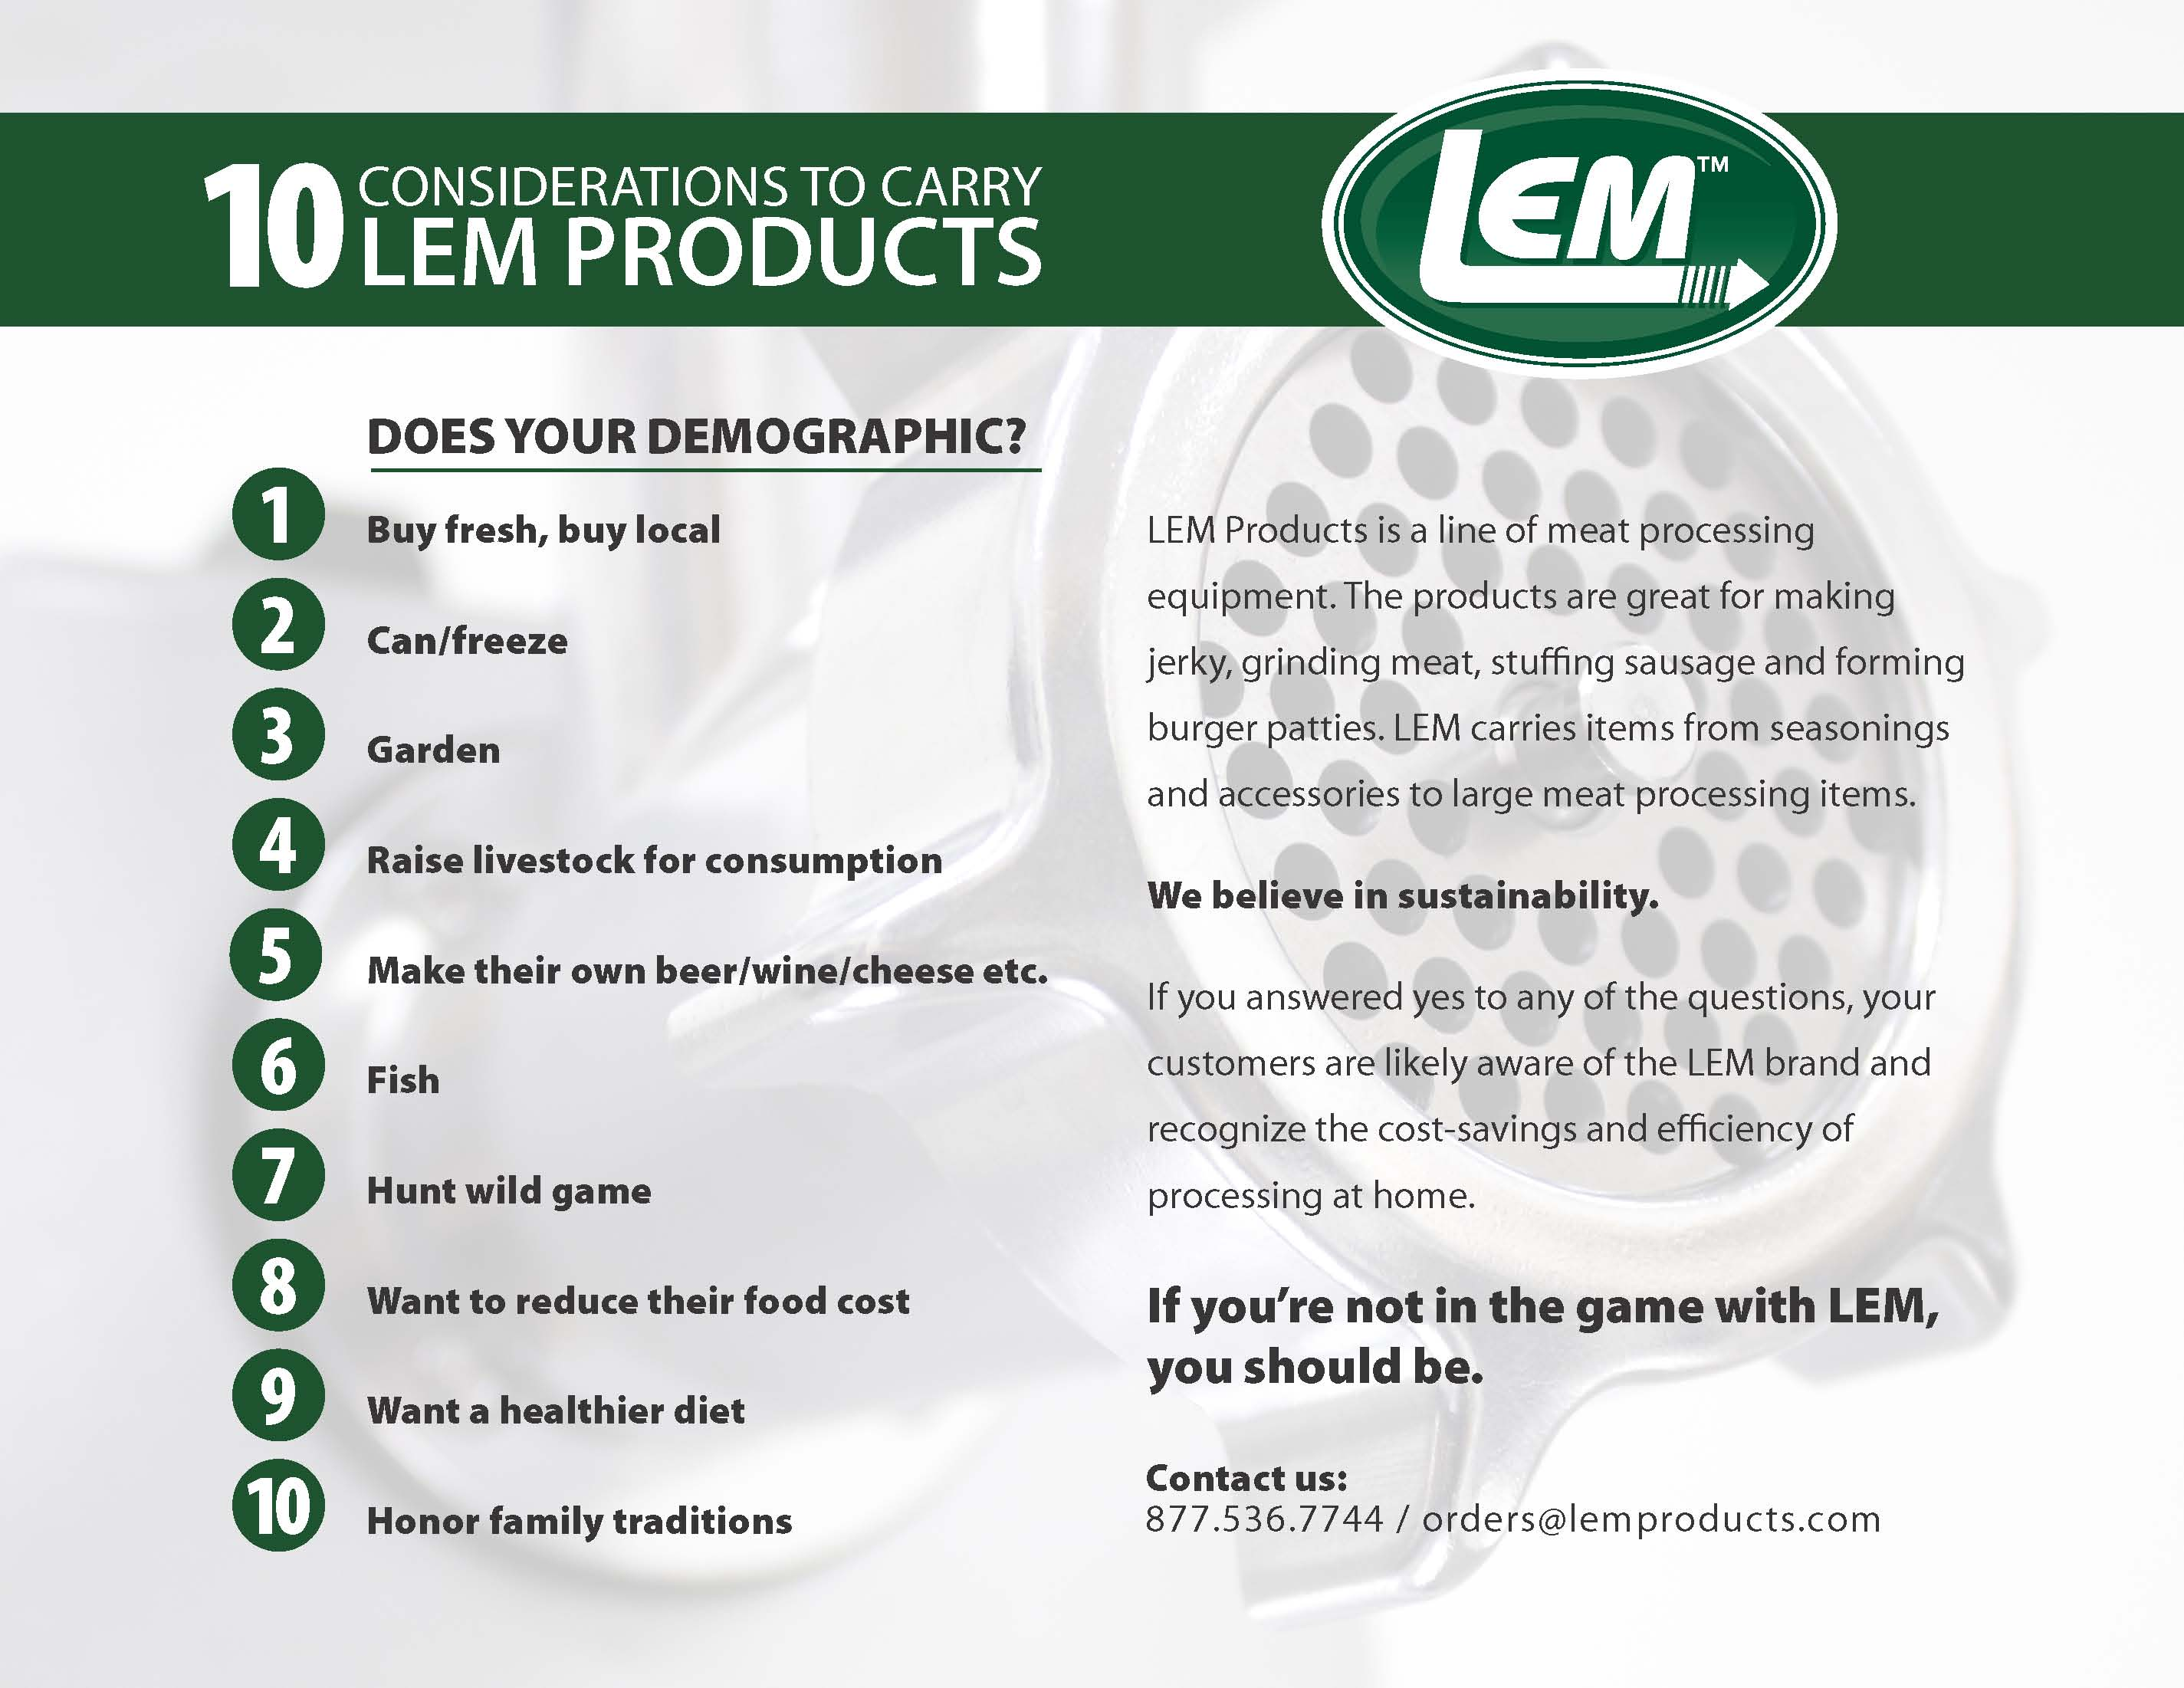 10 Considerations to Carry LEM Products